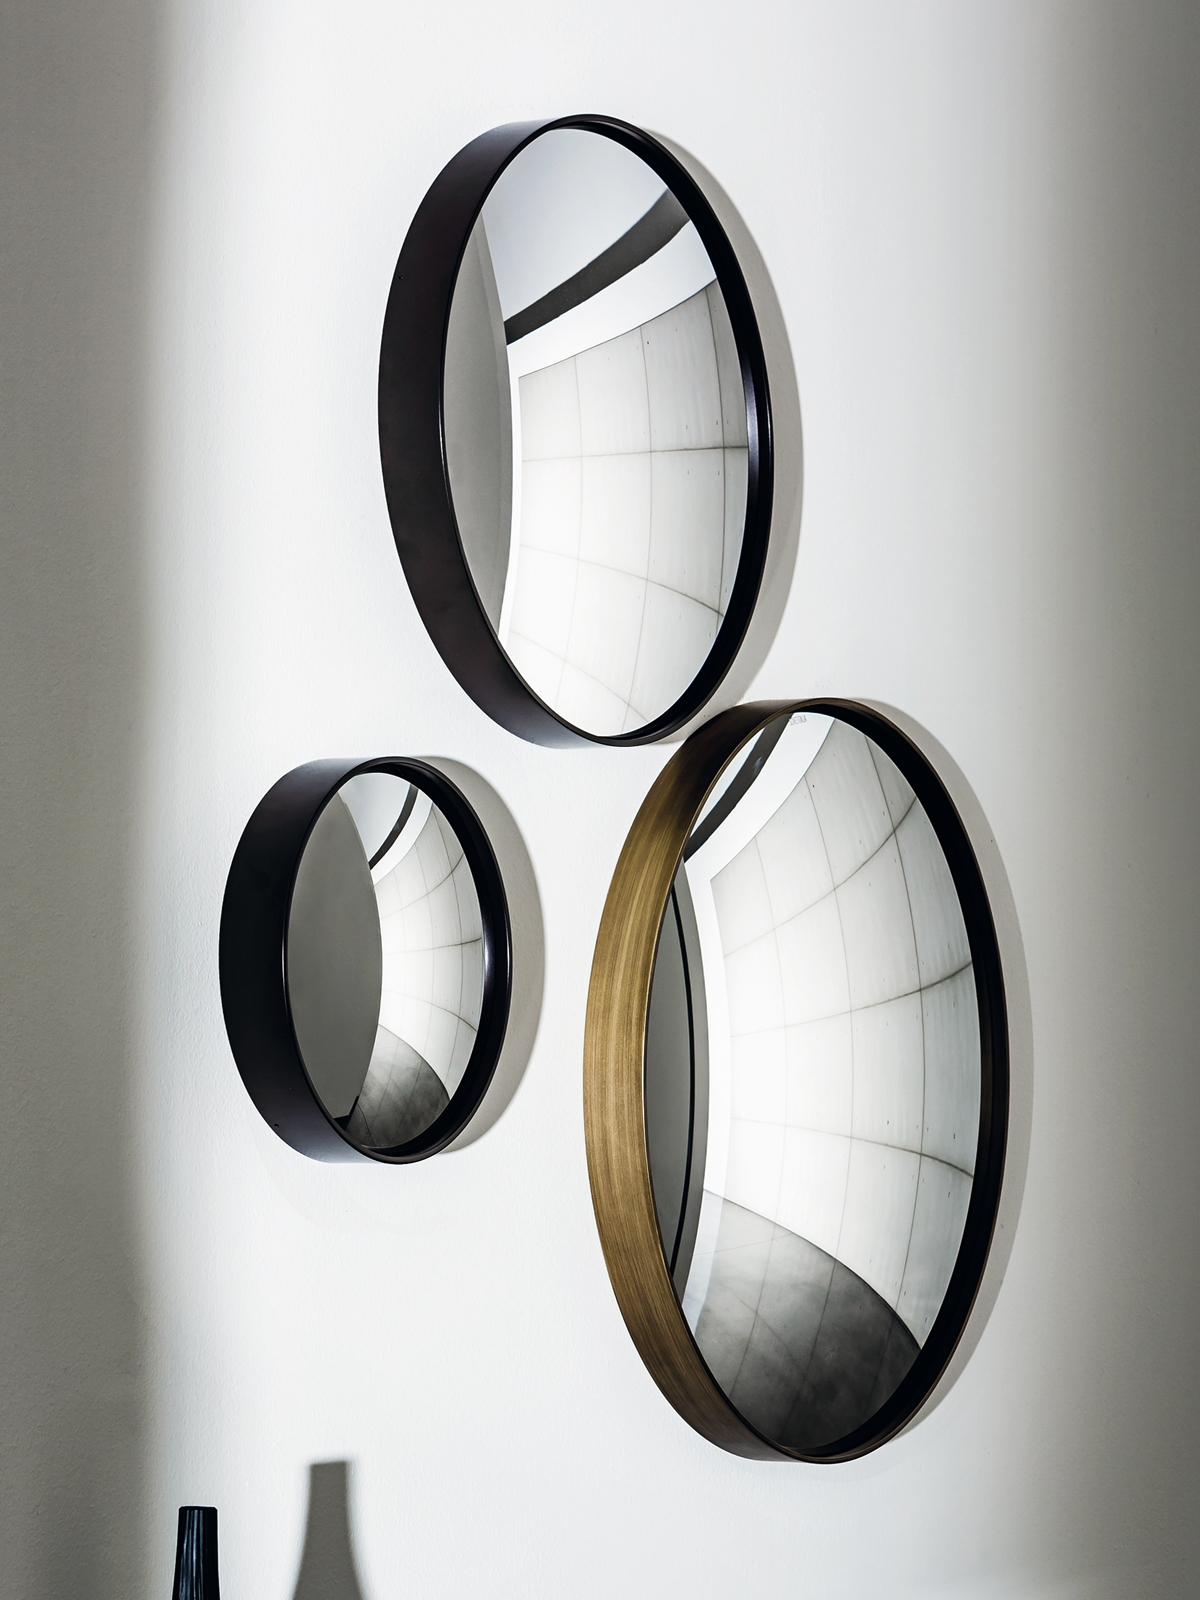 Sail Decorative Convex Mirror Small Unique Wall Mounted Mirror Inside Convex Decorative Mirror (Image 14 of 15)